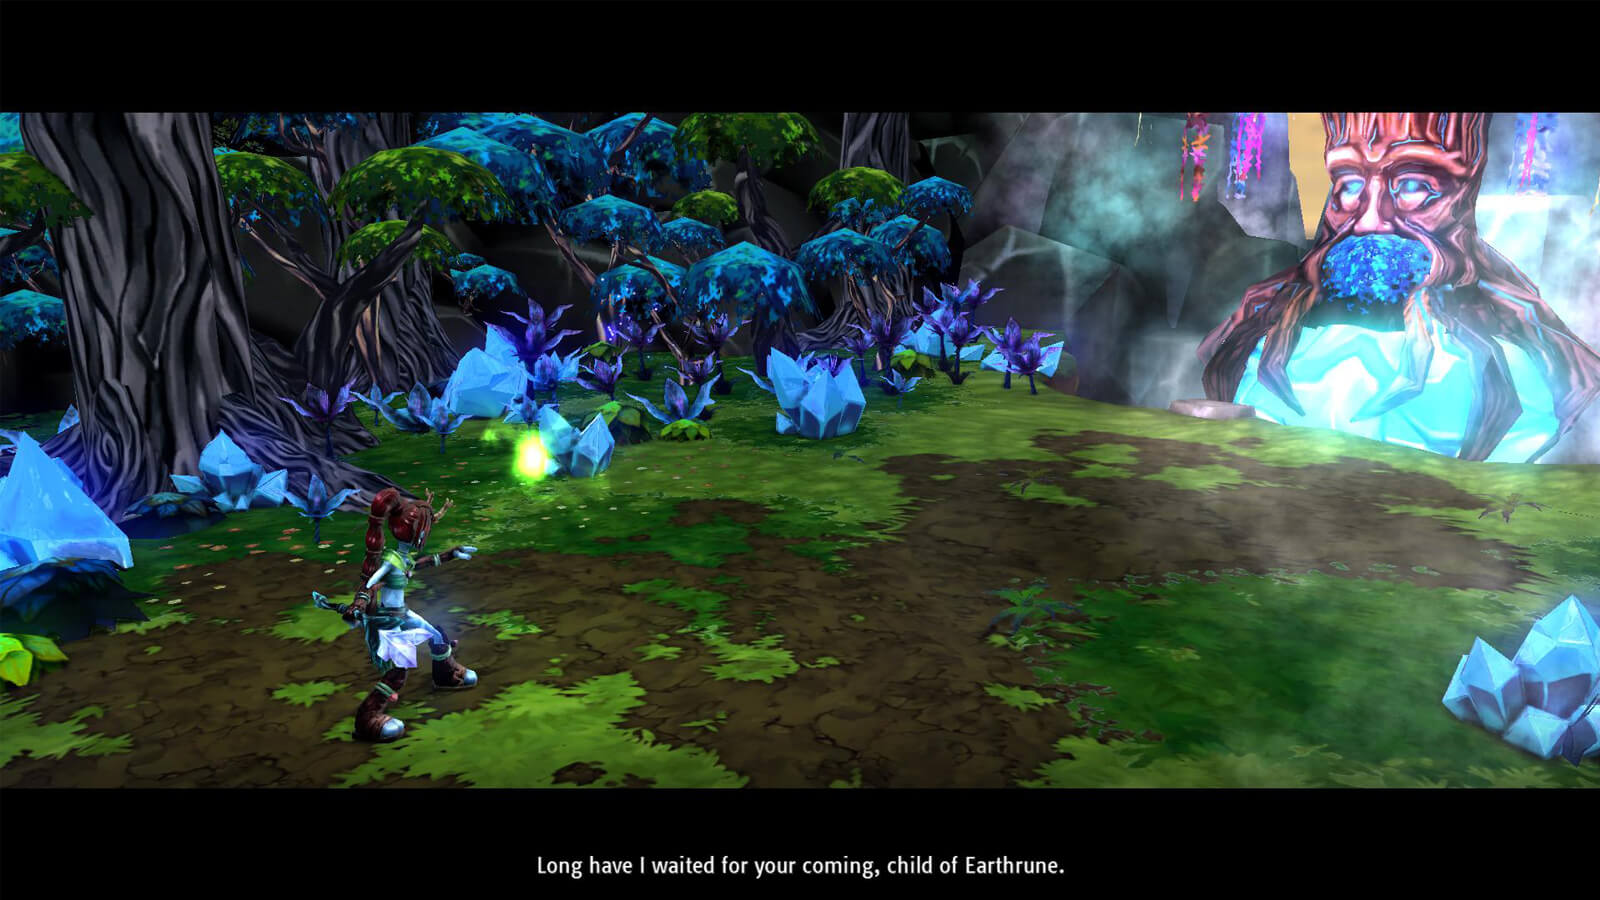 The player's character stands in a wooded clearing before a tree with a face carved into it